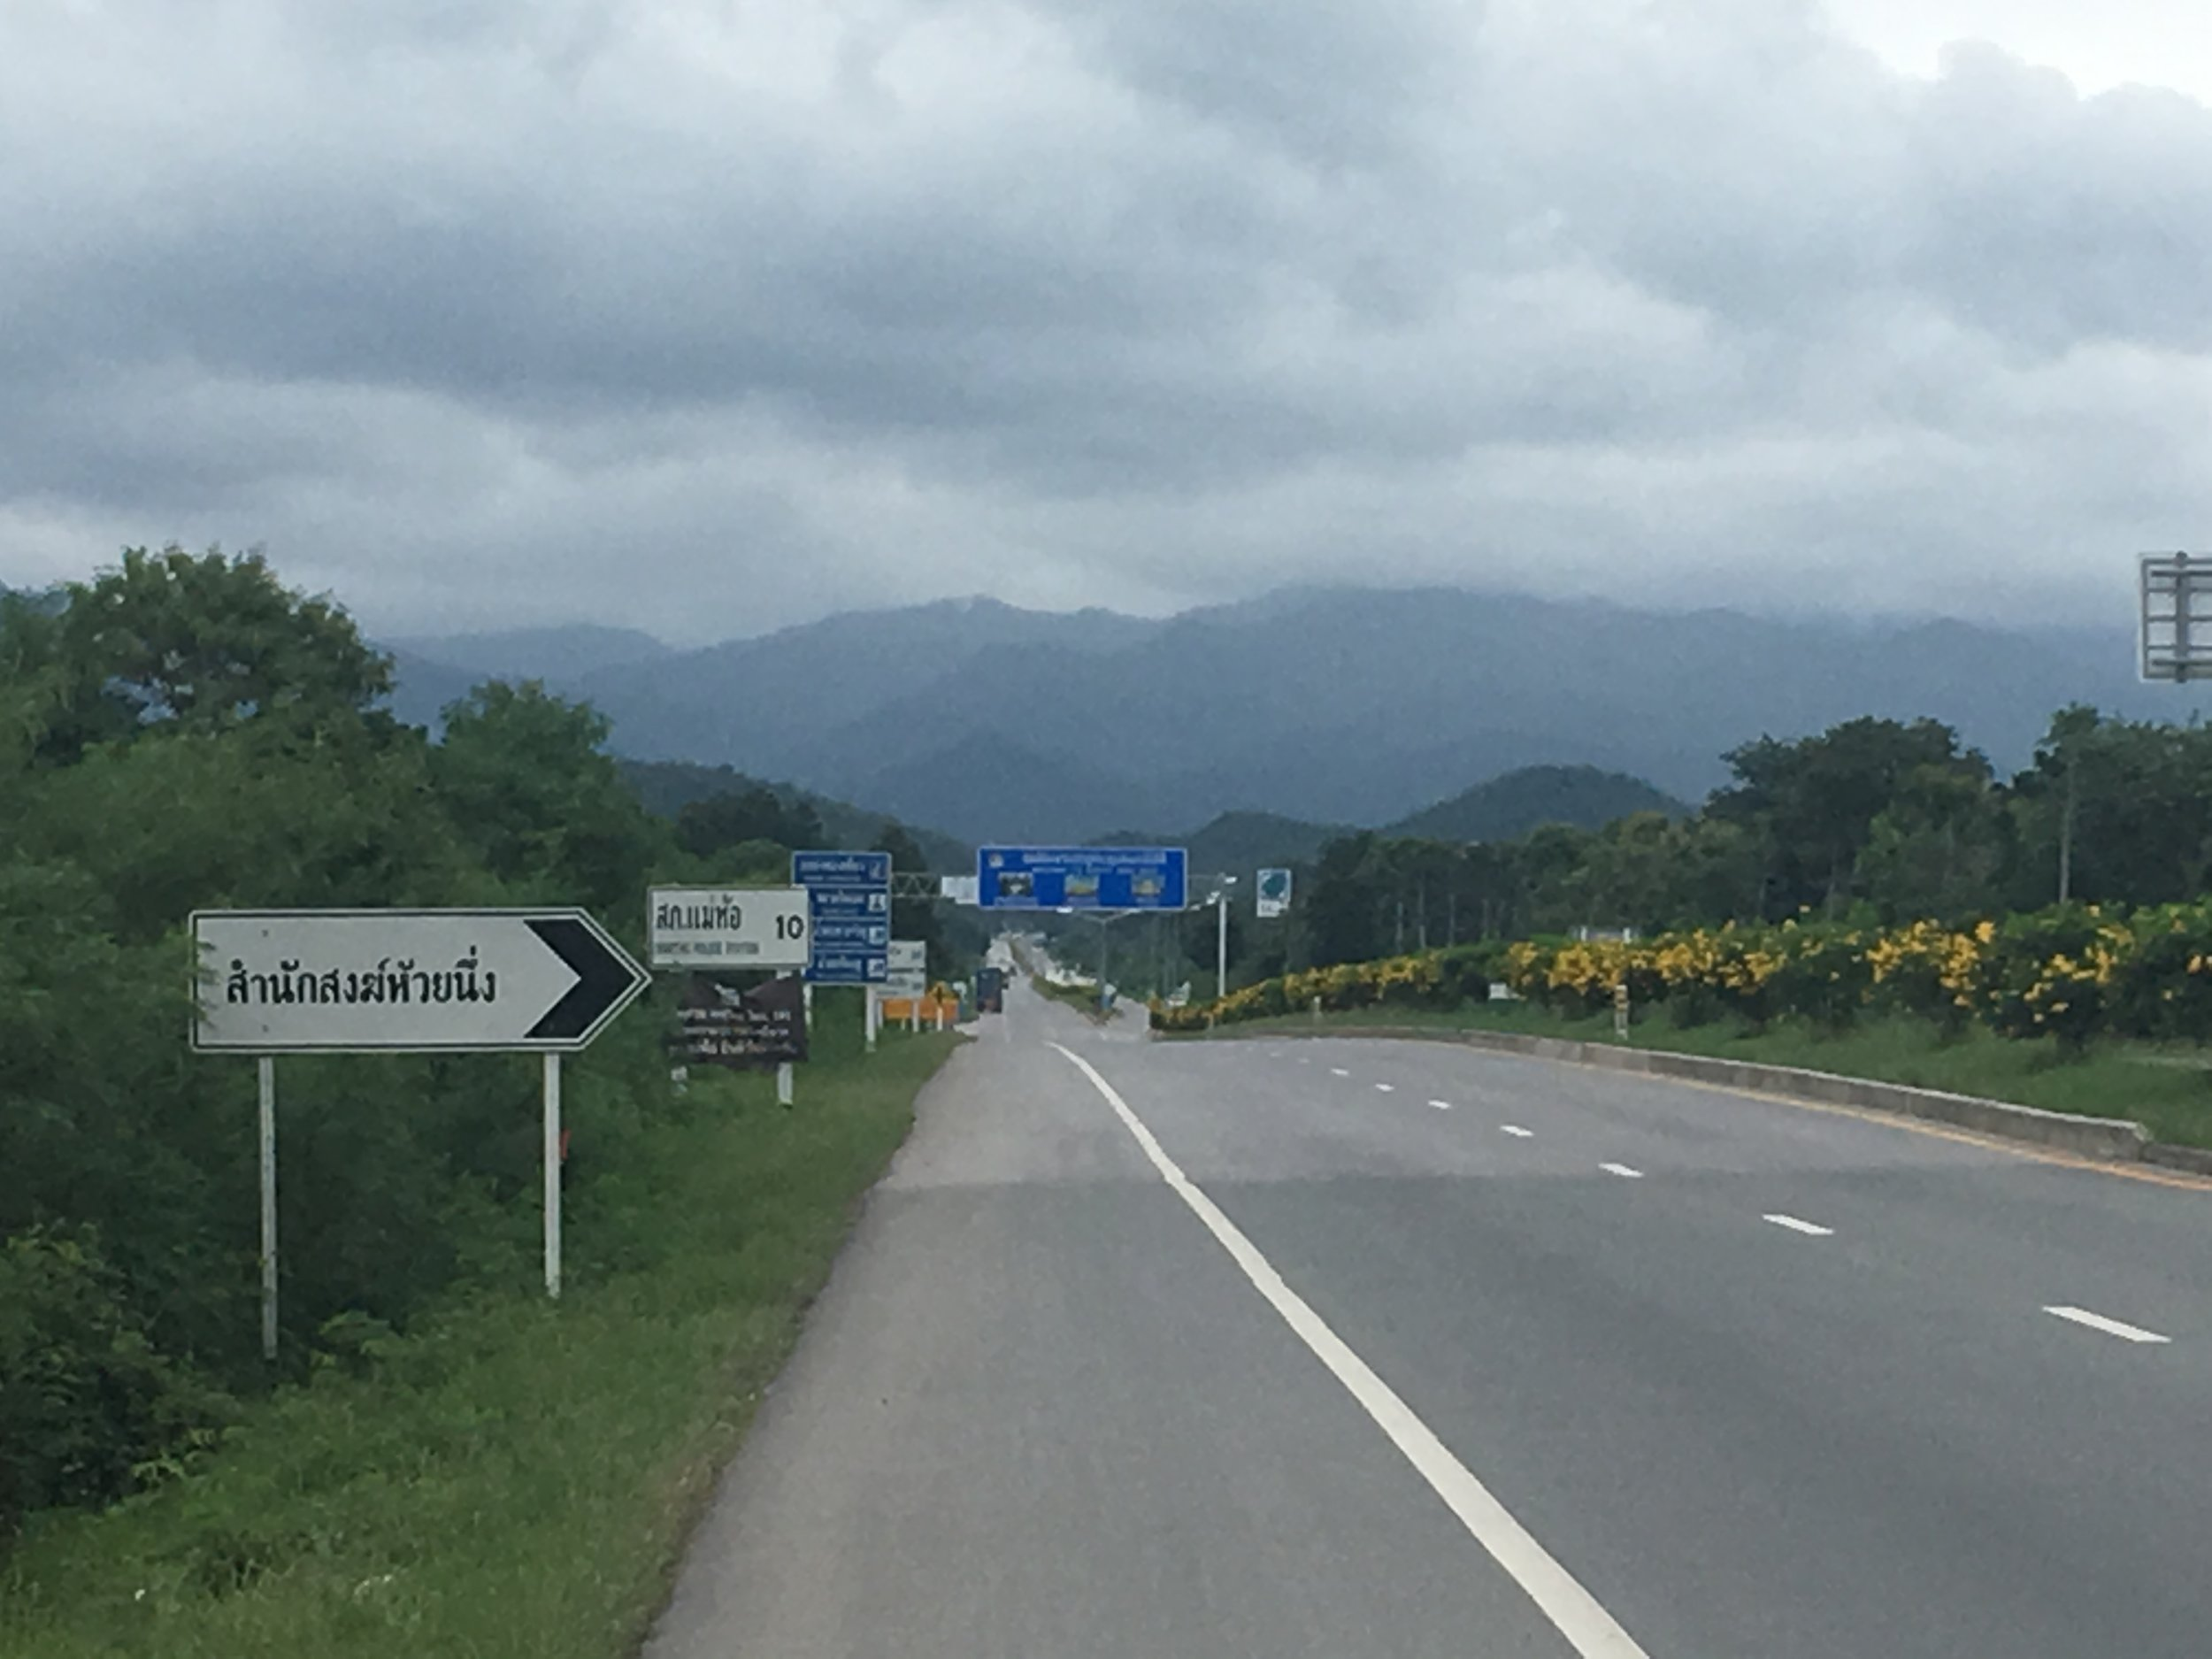 The mountain road ahead leading to Mae Sot at the border with Myanmar